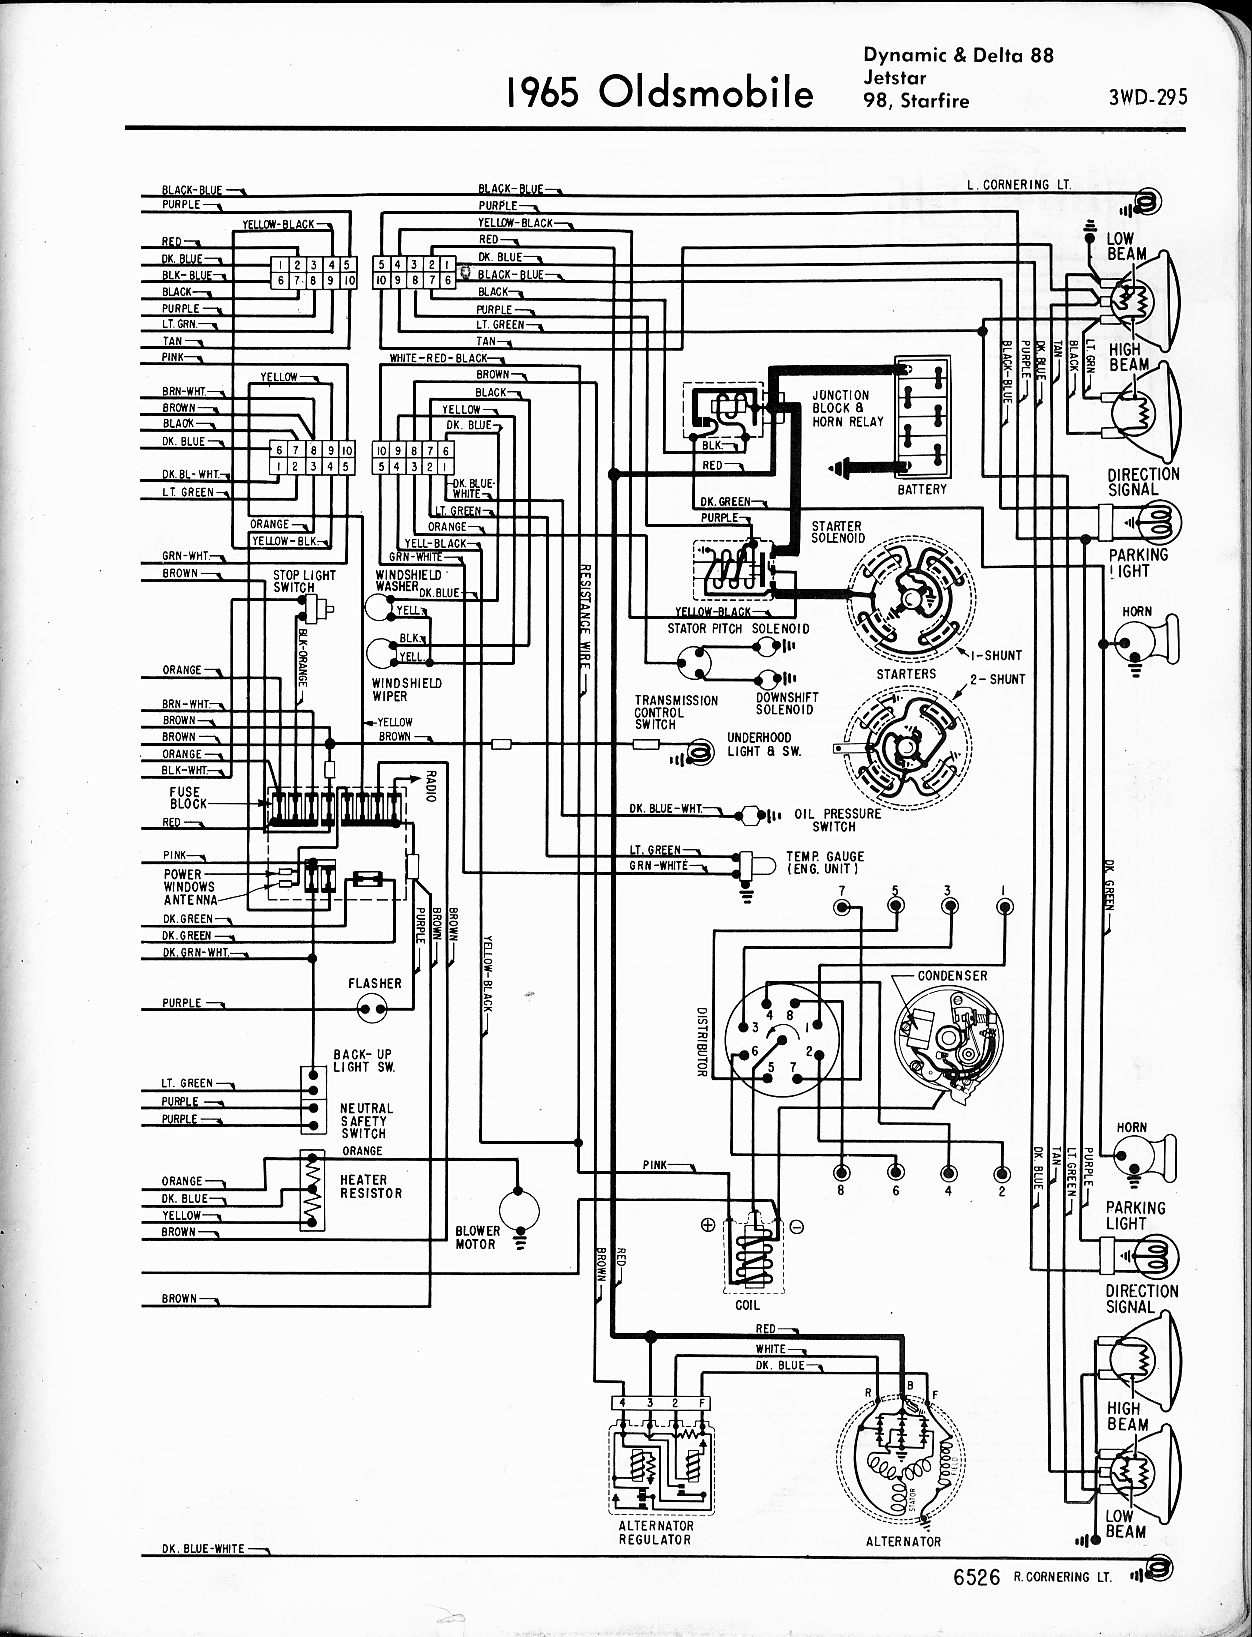 Oldsmobile Cutlass Wiring Diagram By Thomas on 1971 super beetle wiring diagram